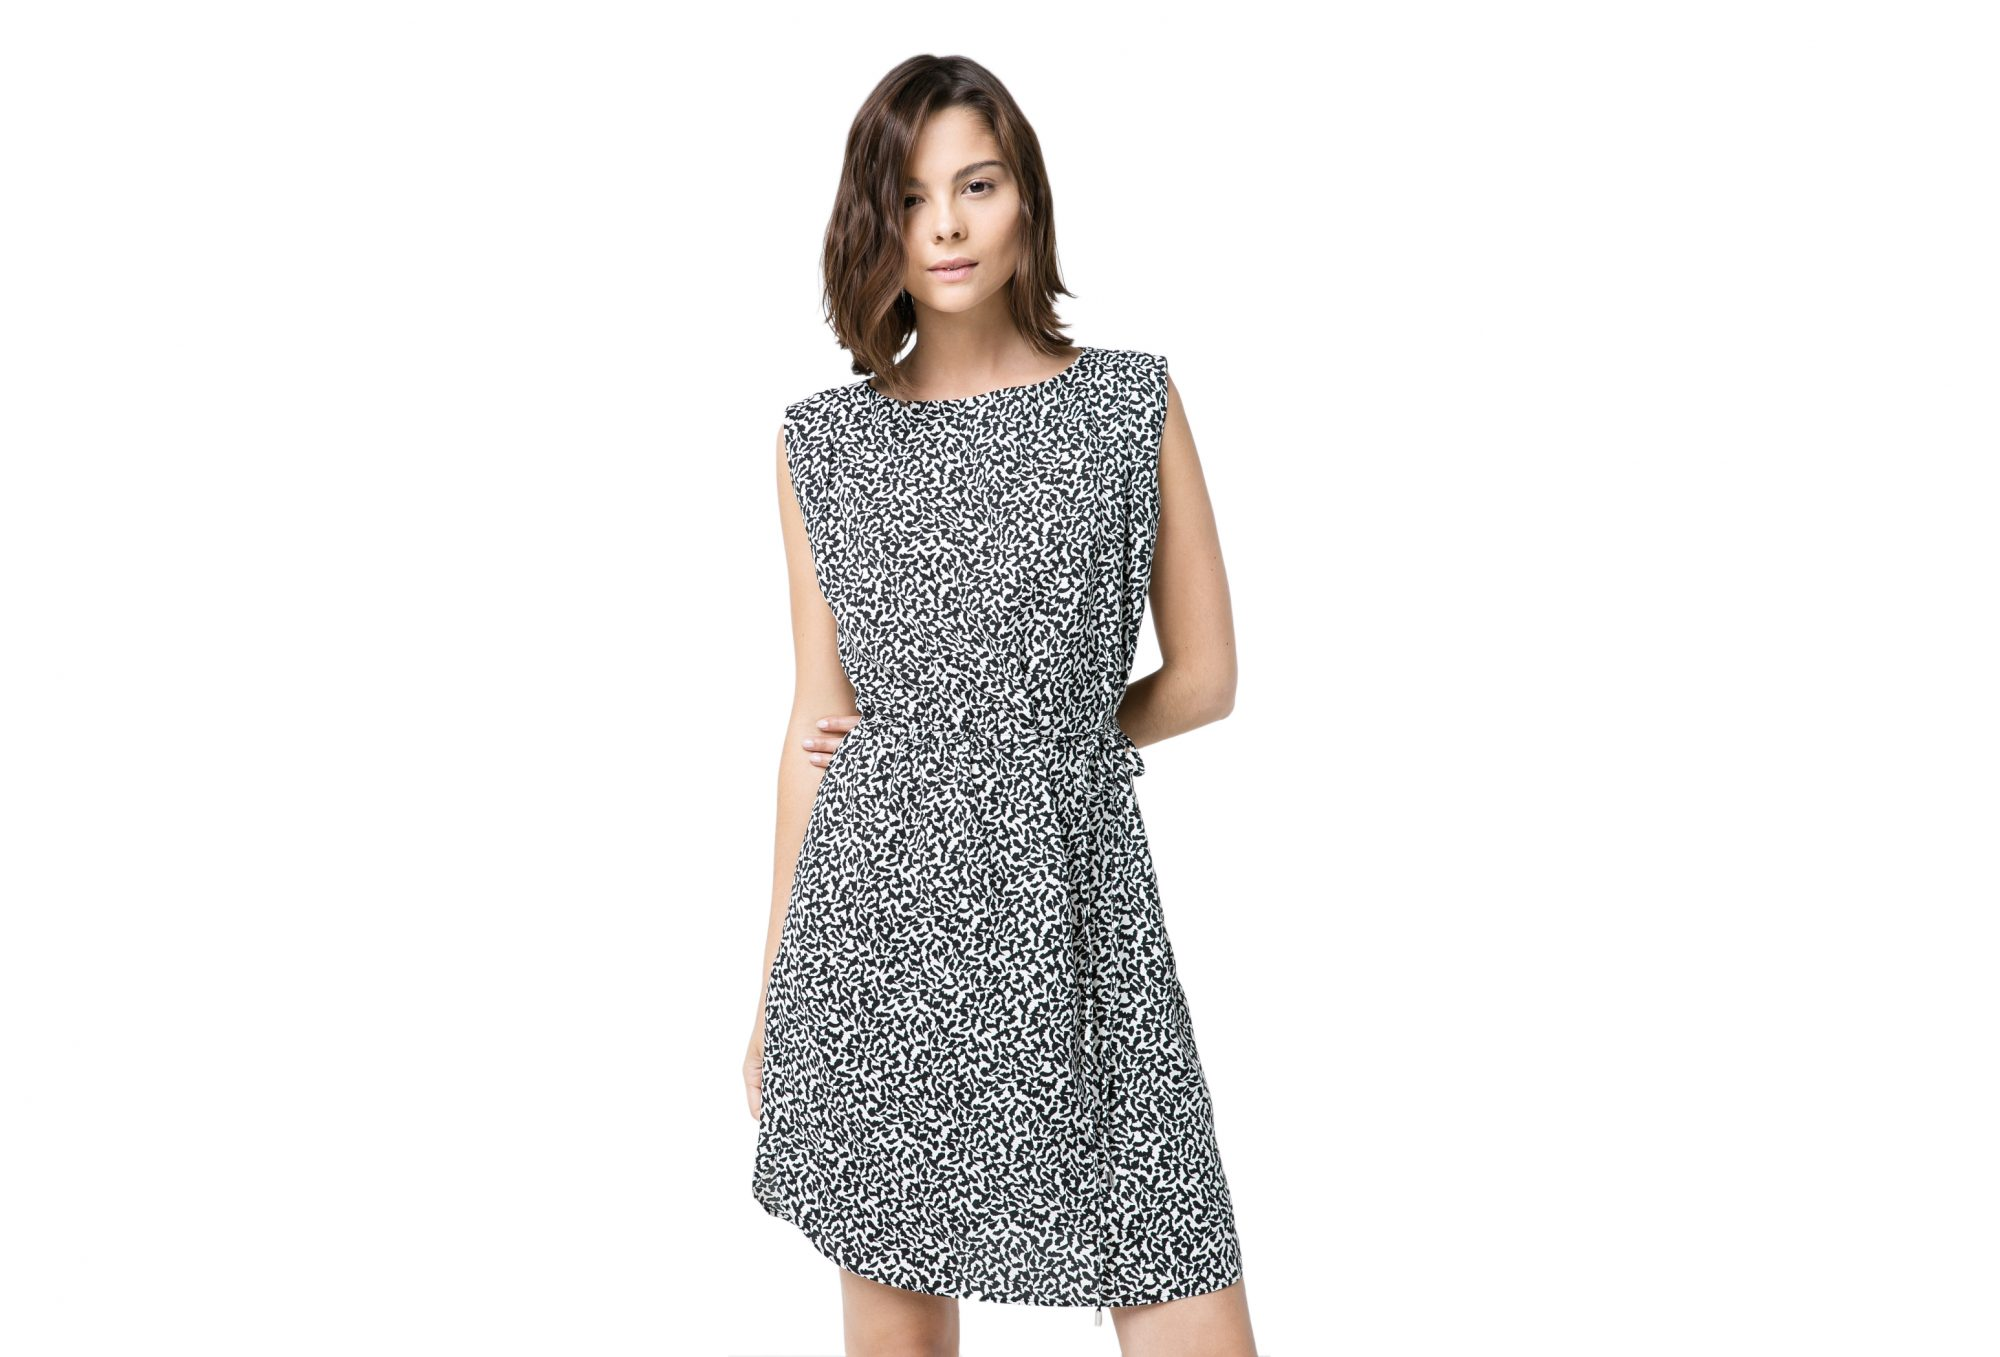 Mango Monochrome Print Dress